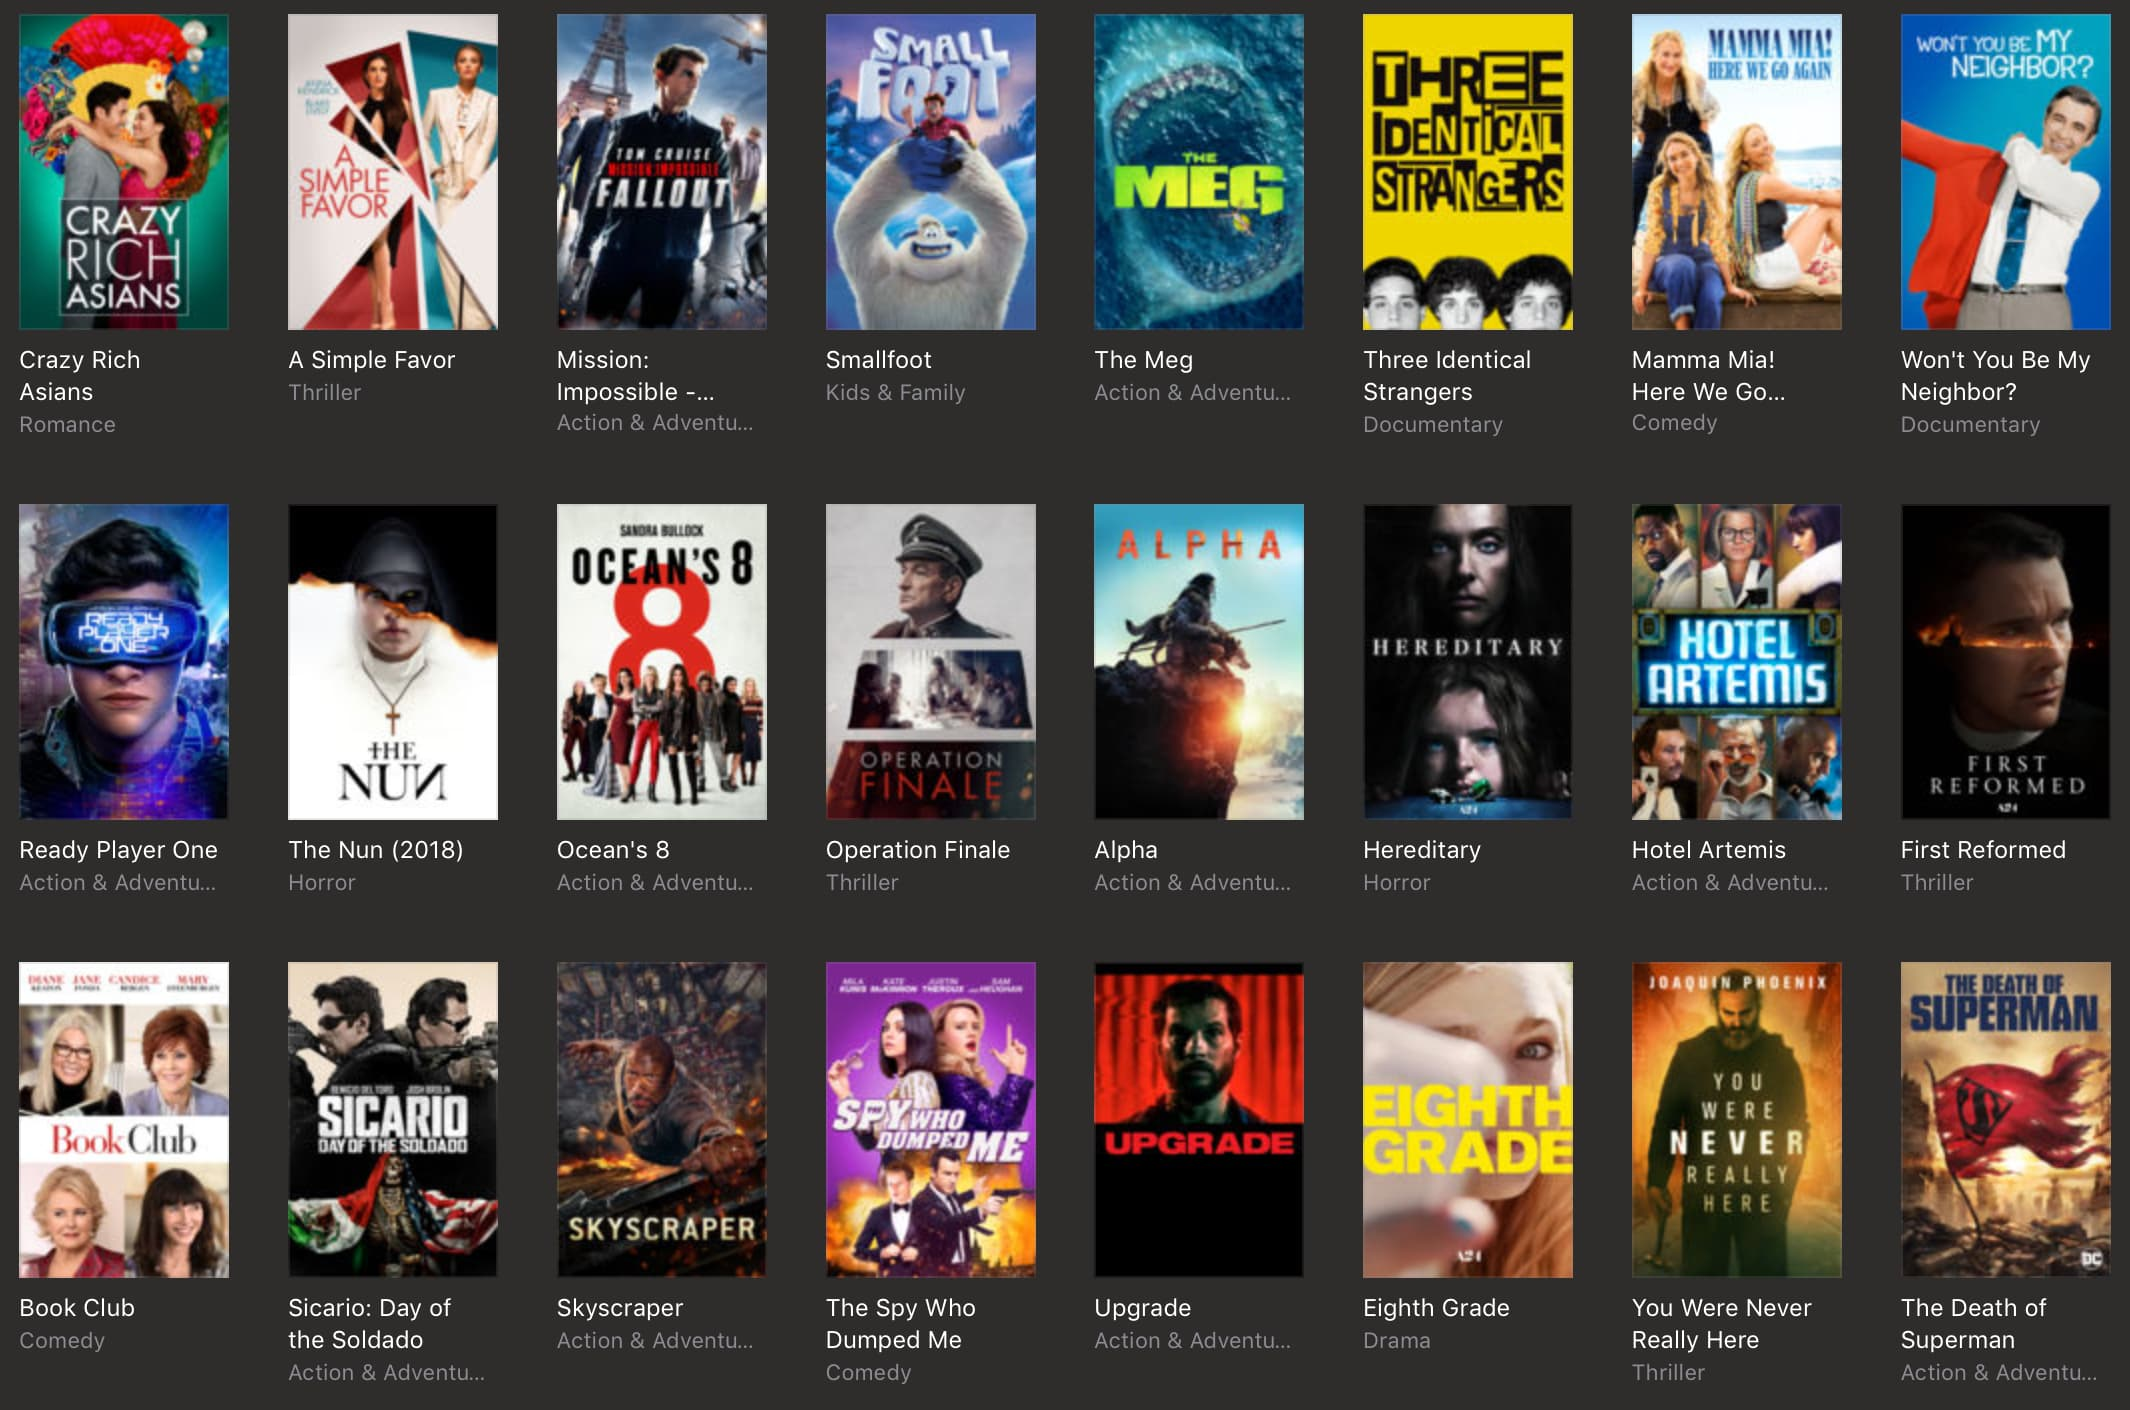 9bff2024d18 Apple on Tuesday updated their iTunes Store with new discounts on movies  and other media. Among the deals are recently released movies like Crazy  Rich ...